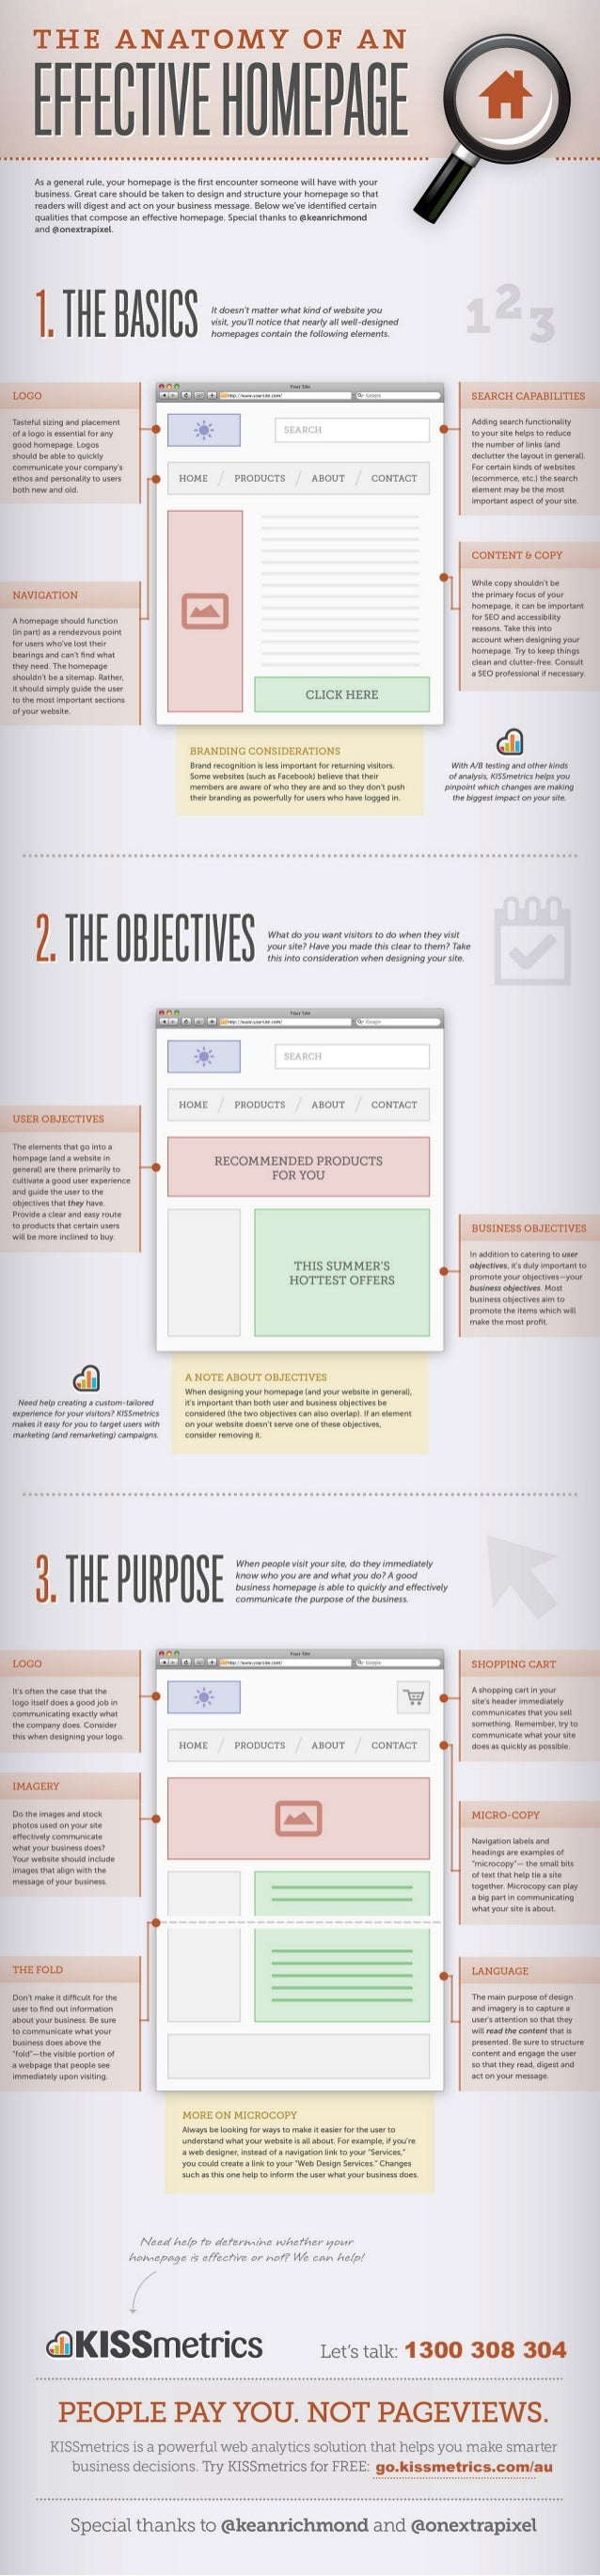 Effective homepage-infographic